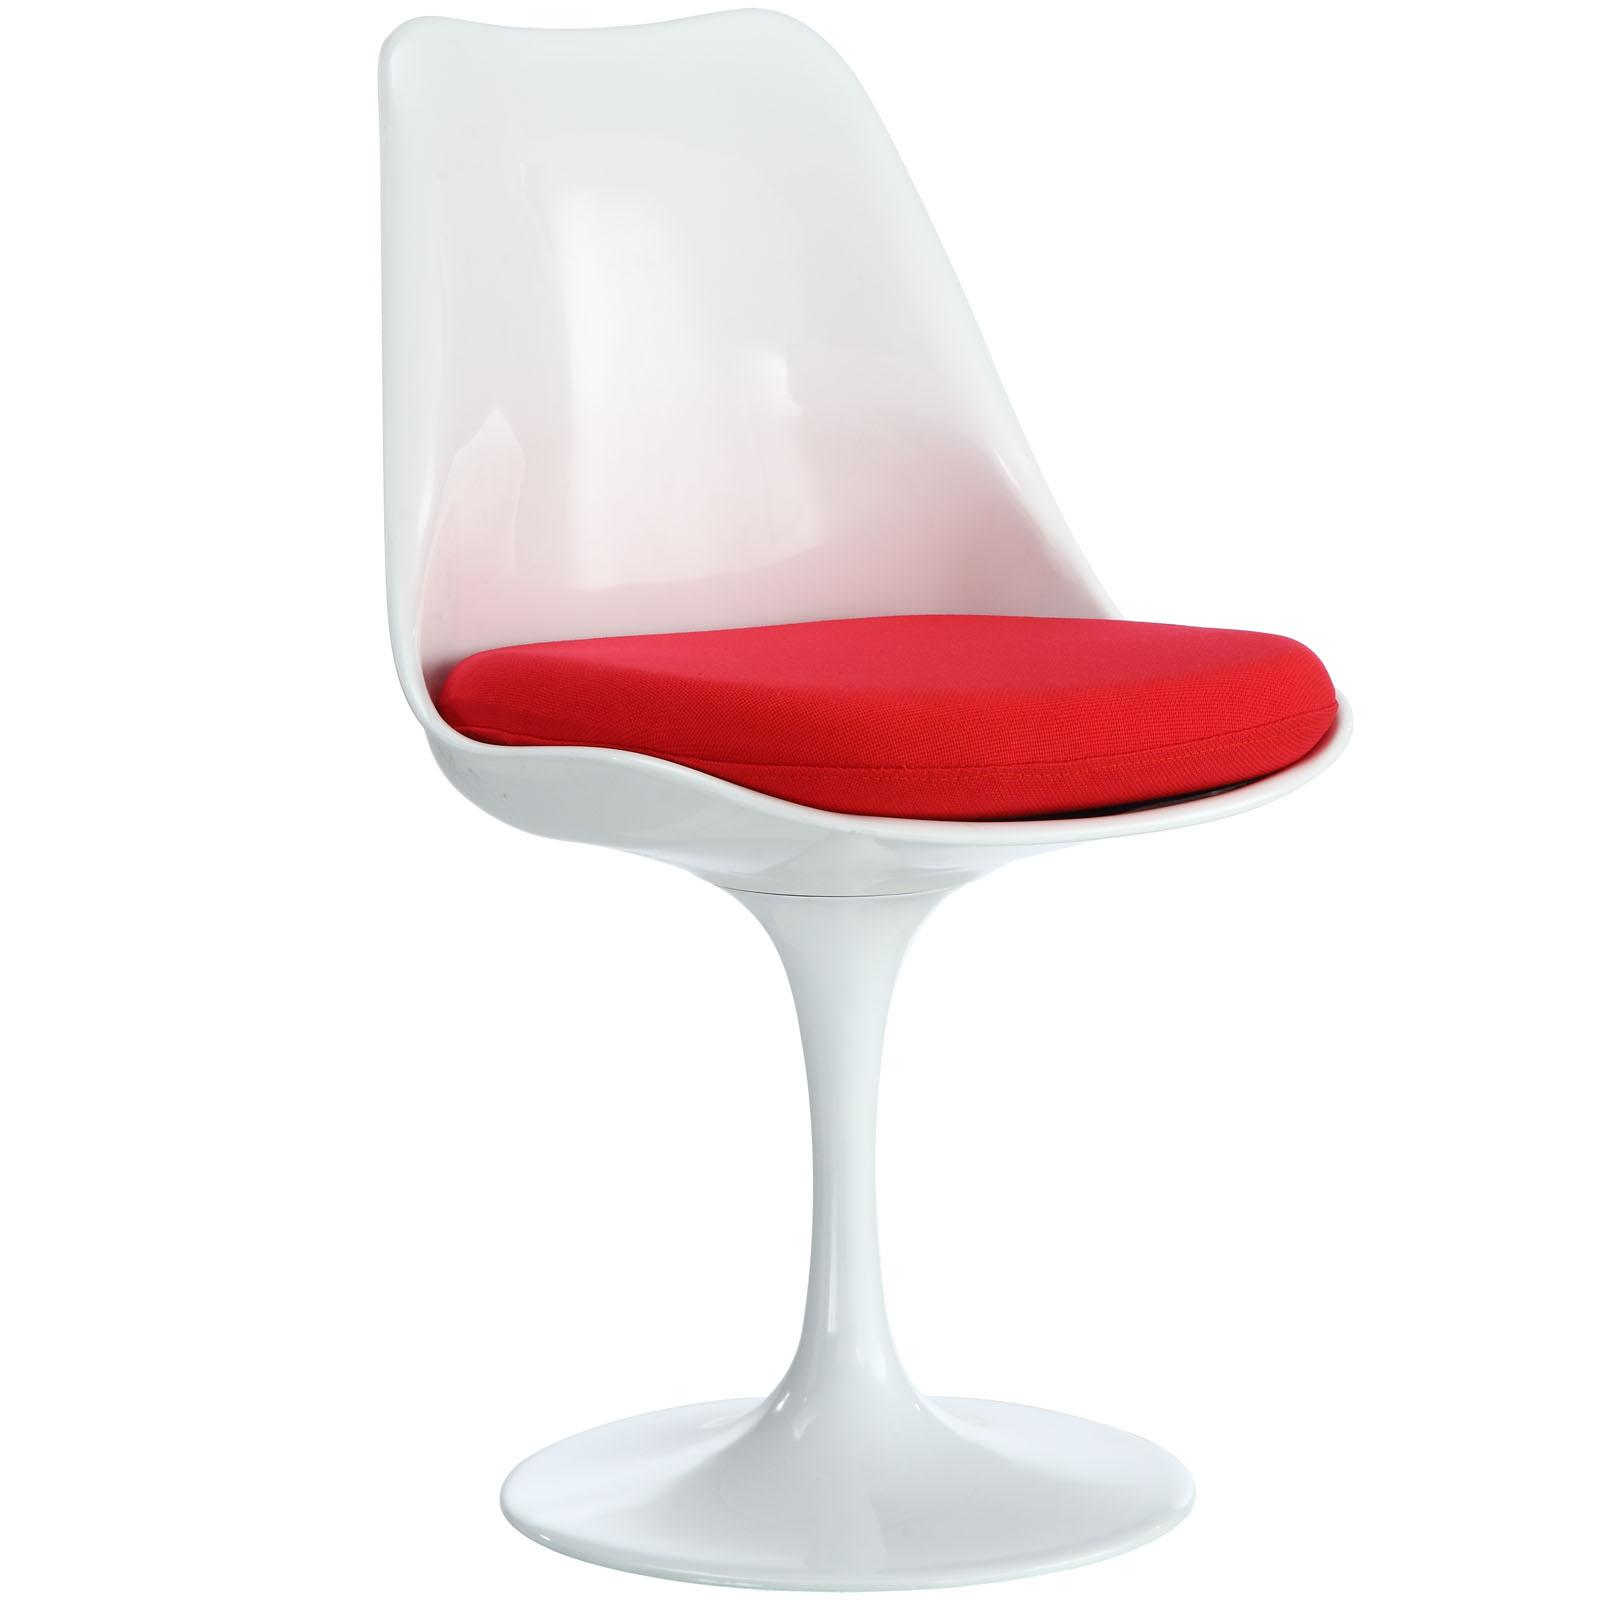 Replica Designer Furniture Eero Saarinen Swivel Tulip Dining Chair 5